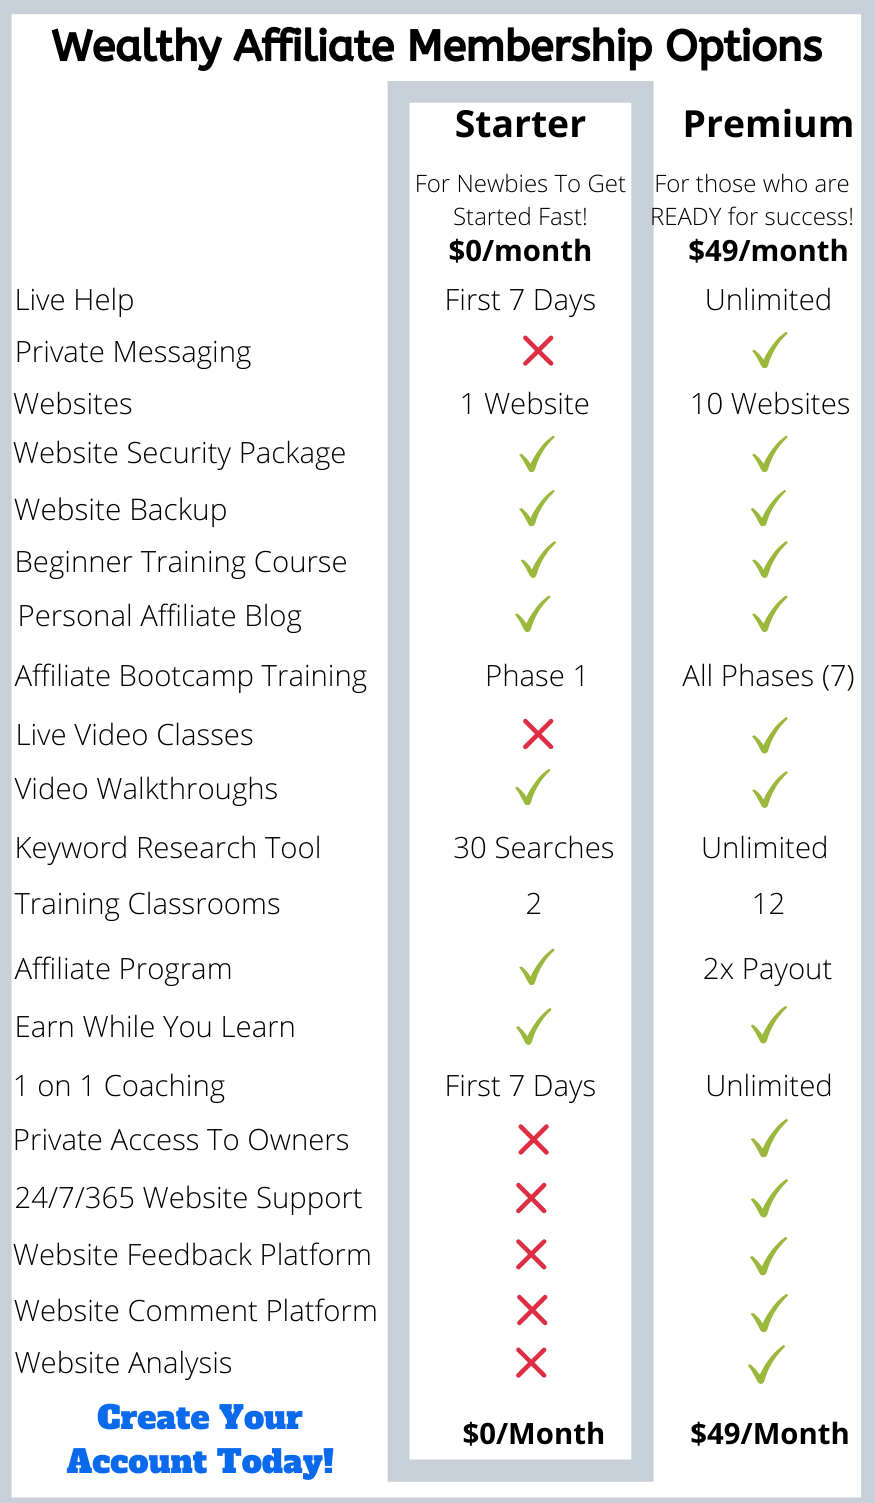 Infographic showing Wealthy Affiliate Membership Options